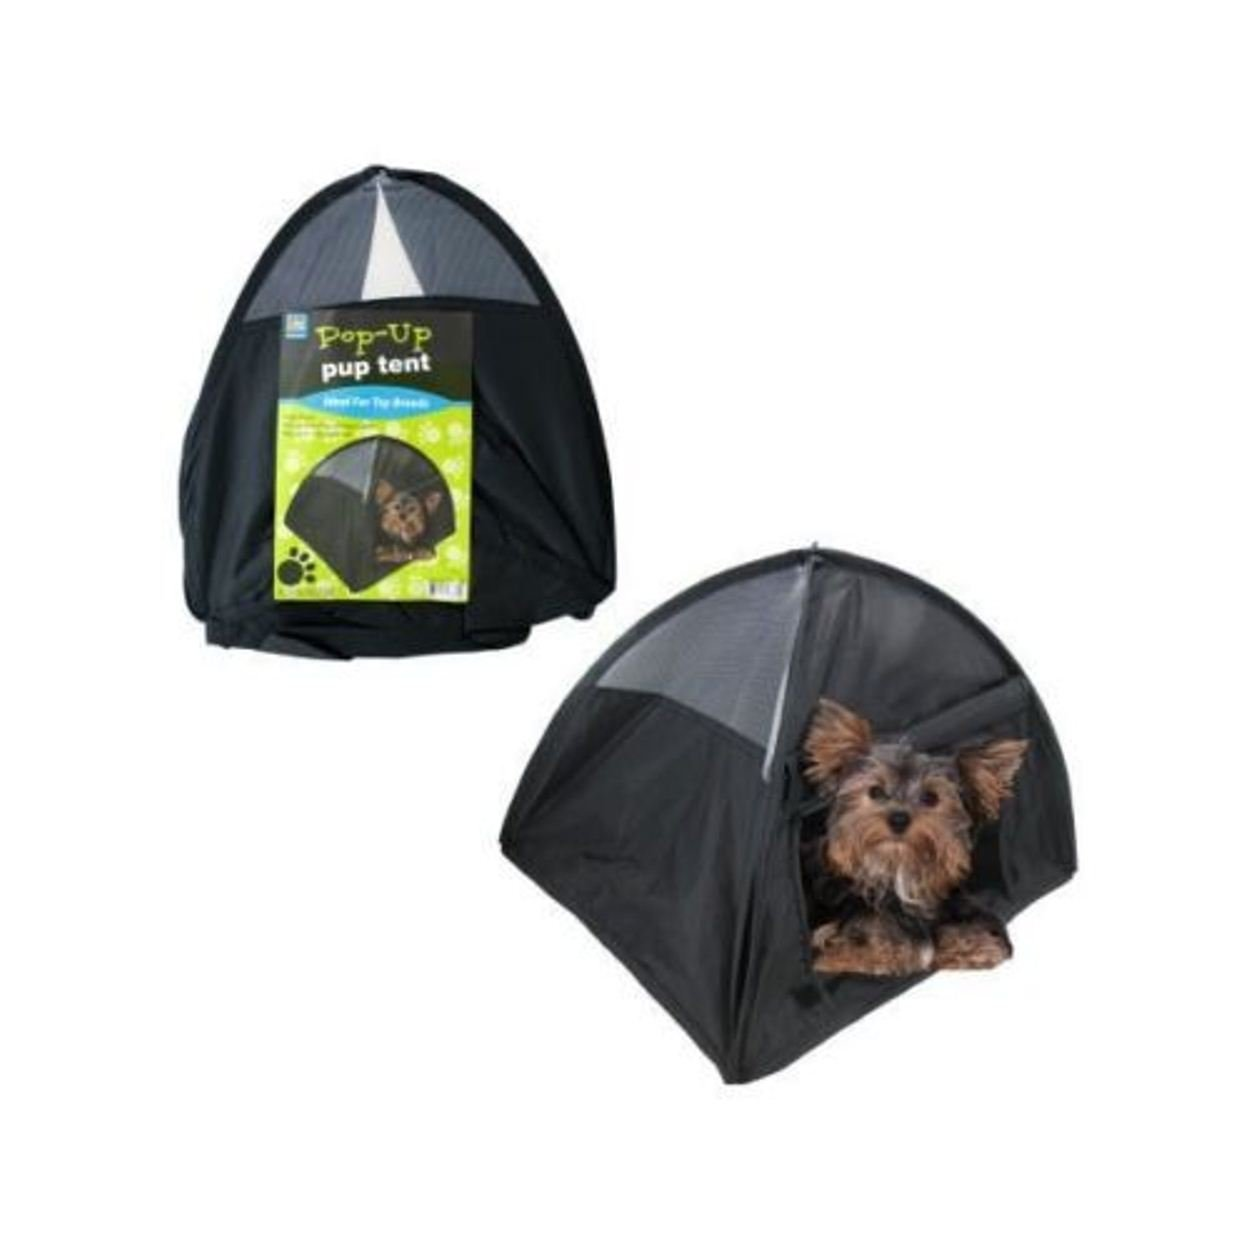 dog camping small tent nylon cat pets bed pop up holiday. Black Bedroom Furniture Sets. Home Design Ideas